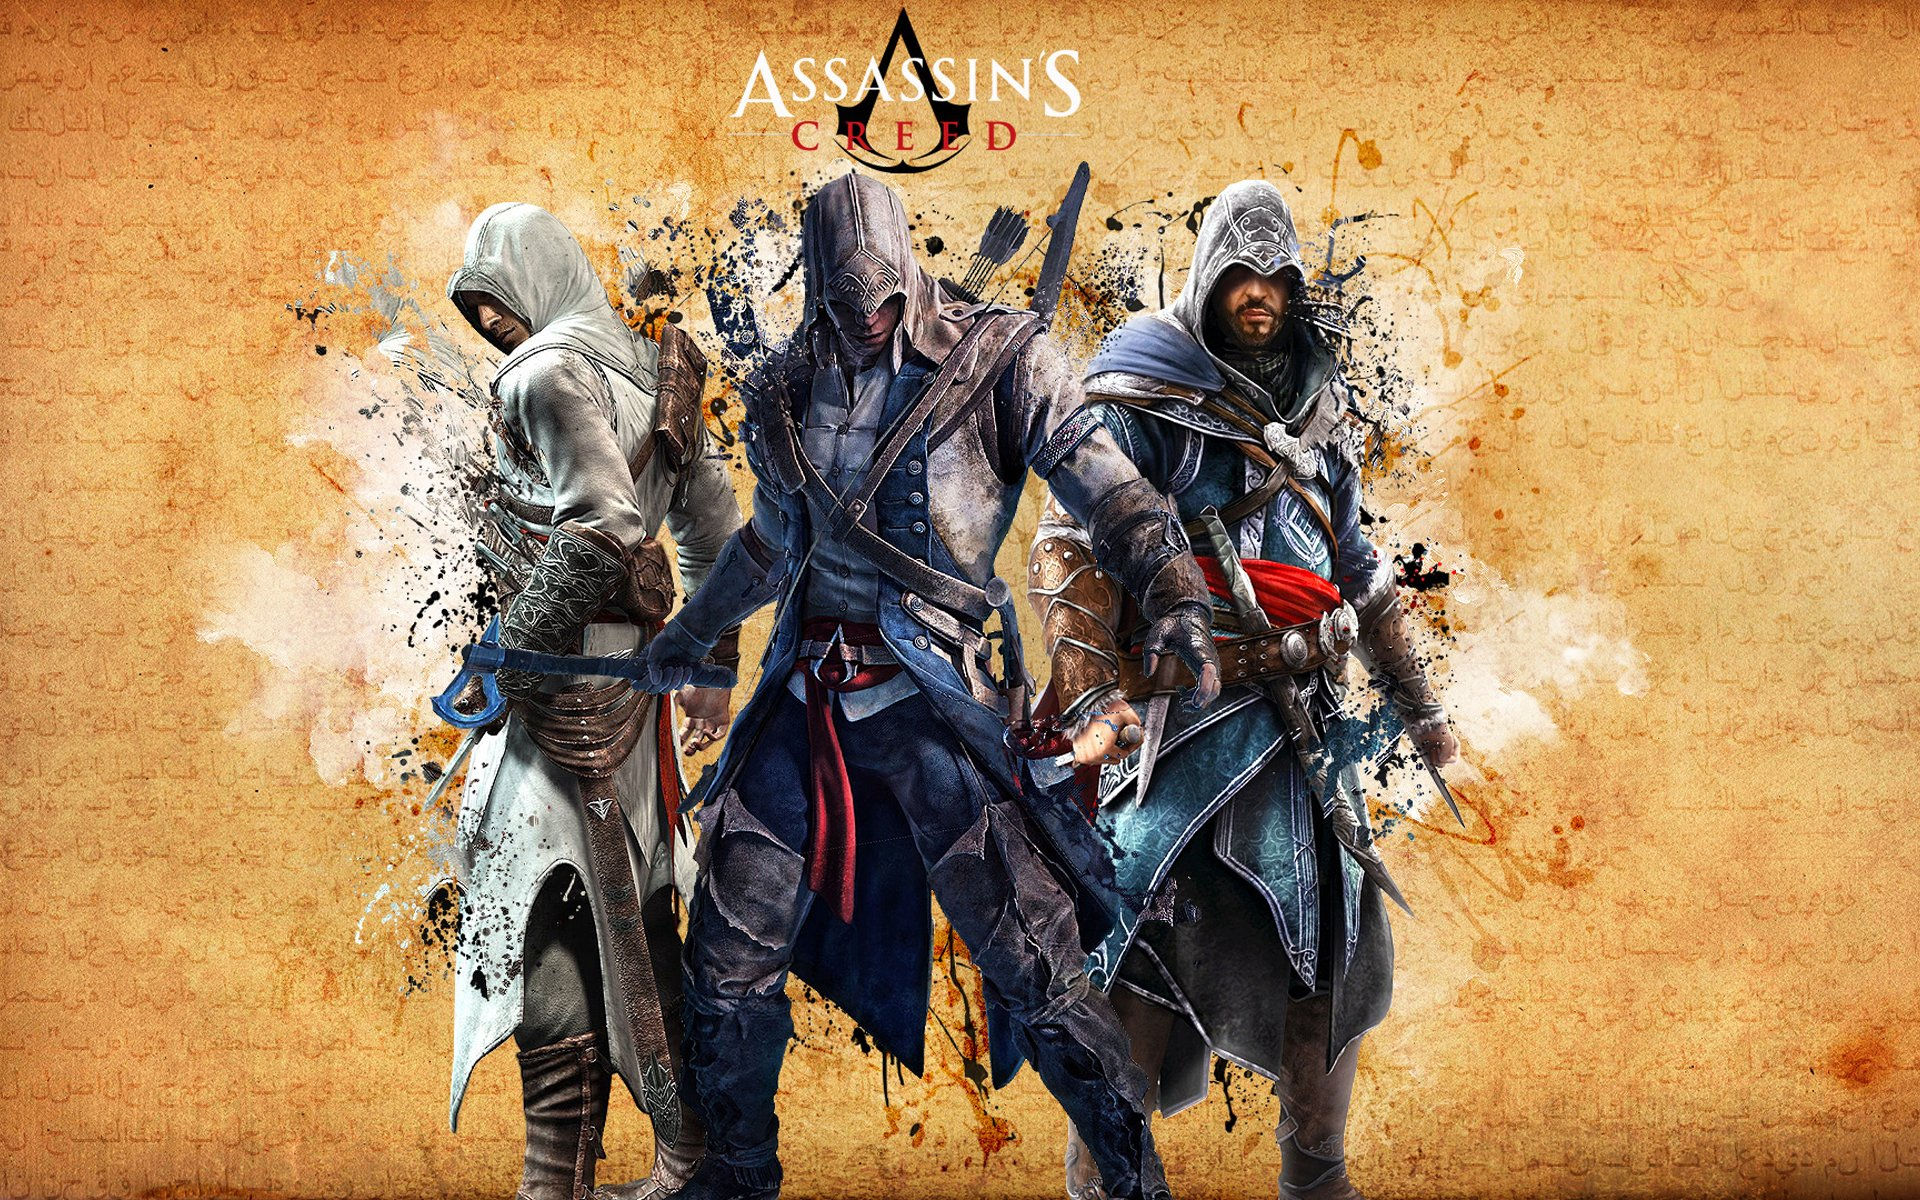 22 Altair Assassins Creed Hd Wallpapers Background